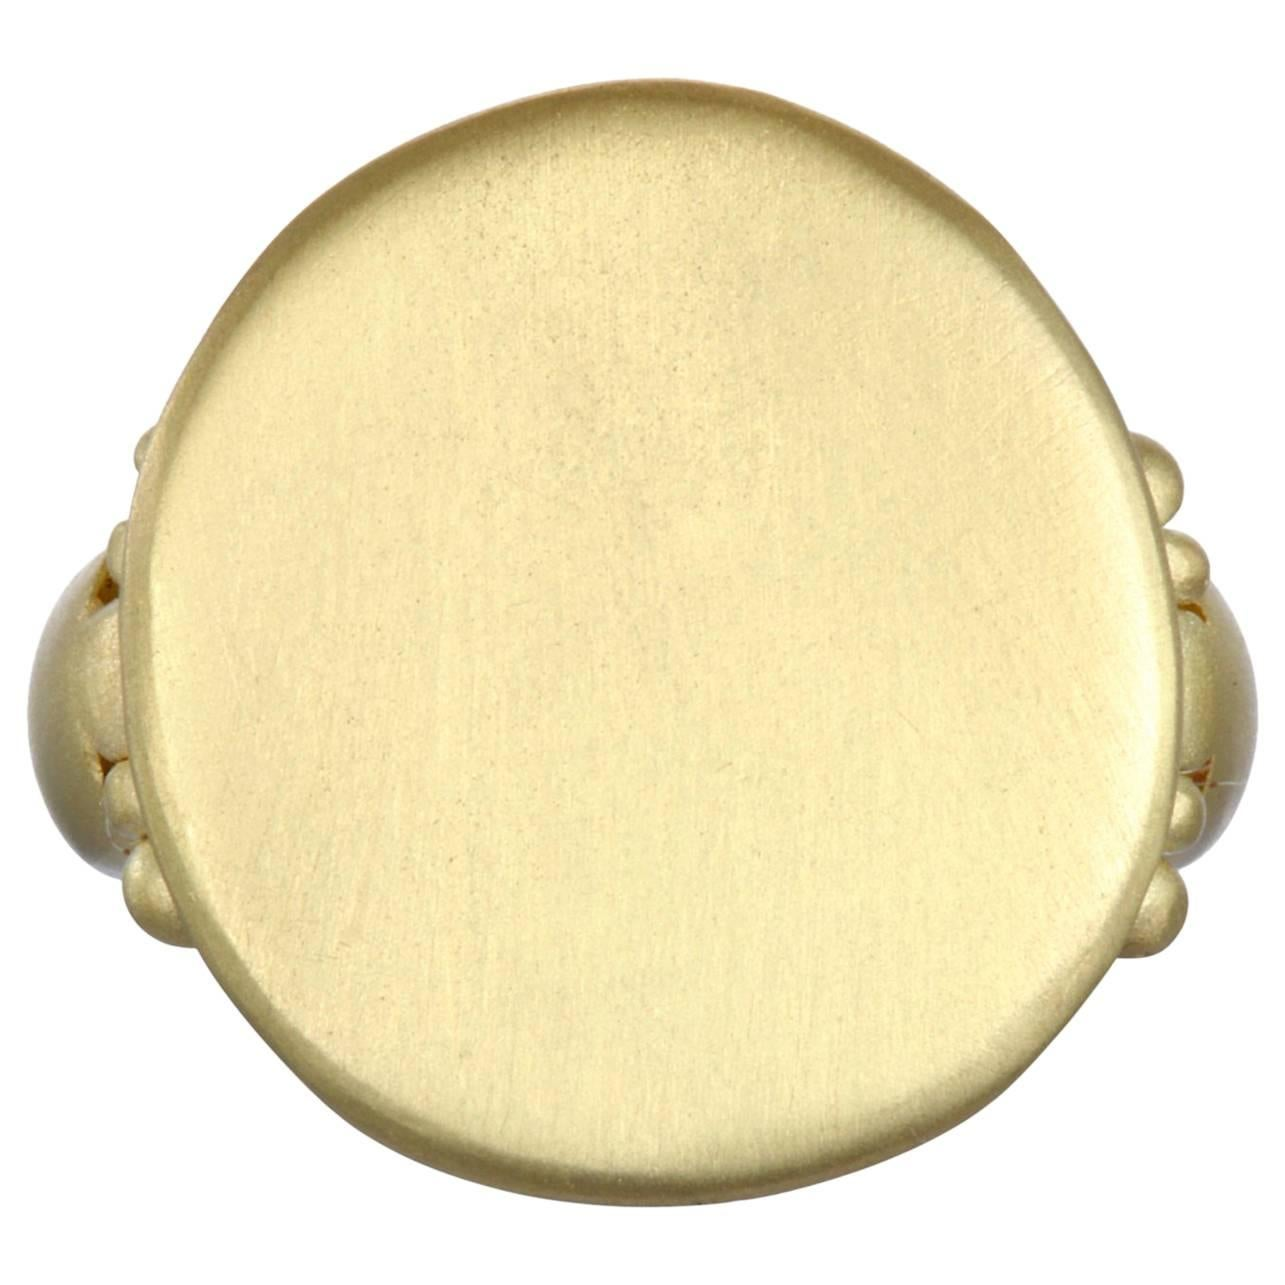 Faye Kim 18k Gold Signet Ring